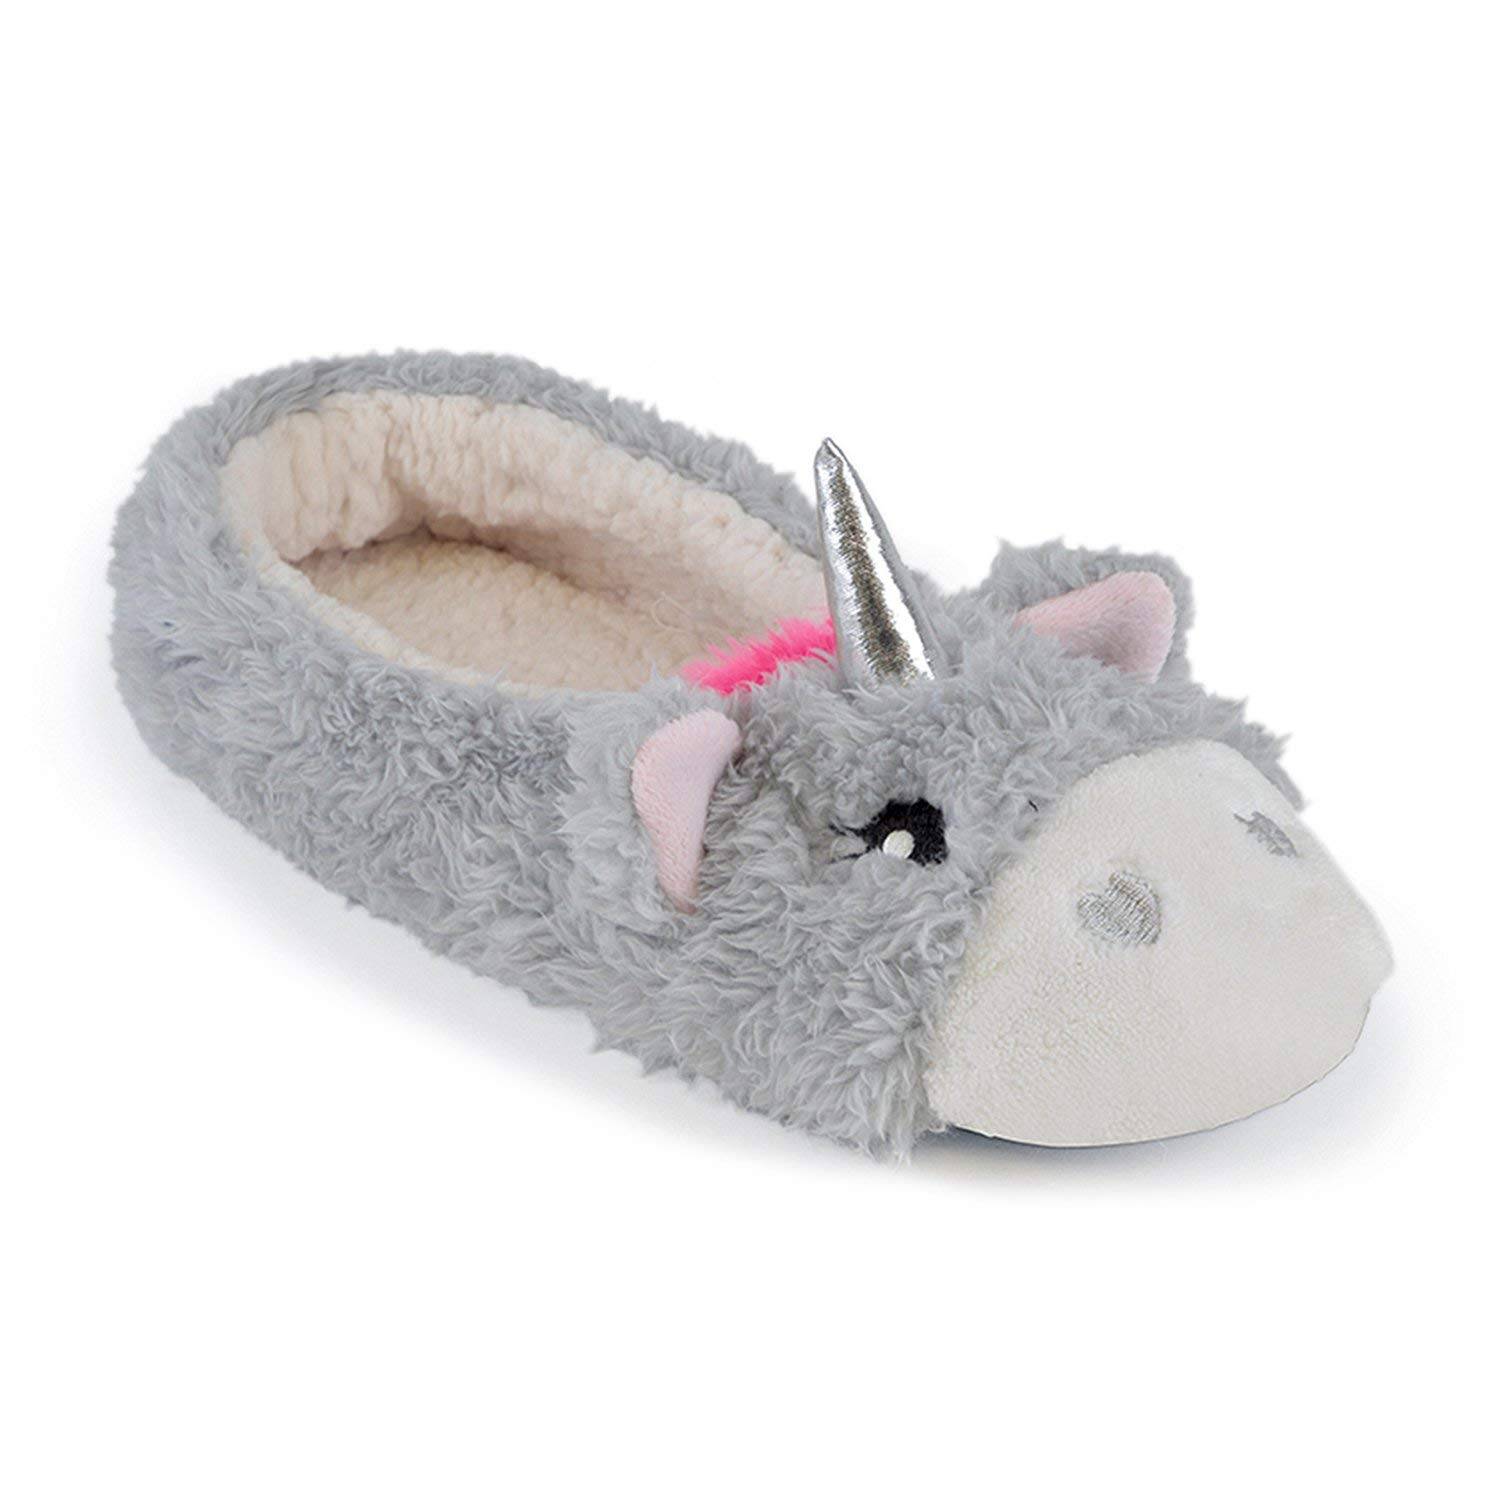 9368935ab922 Get Quotations · Women s Ladies Footwear Unicorn Ballet Slippers with PVC  Dot Sole